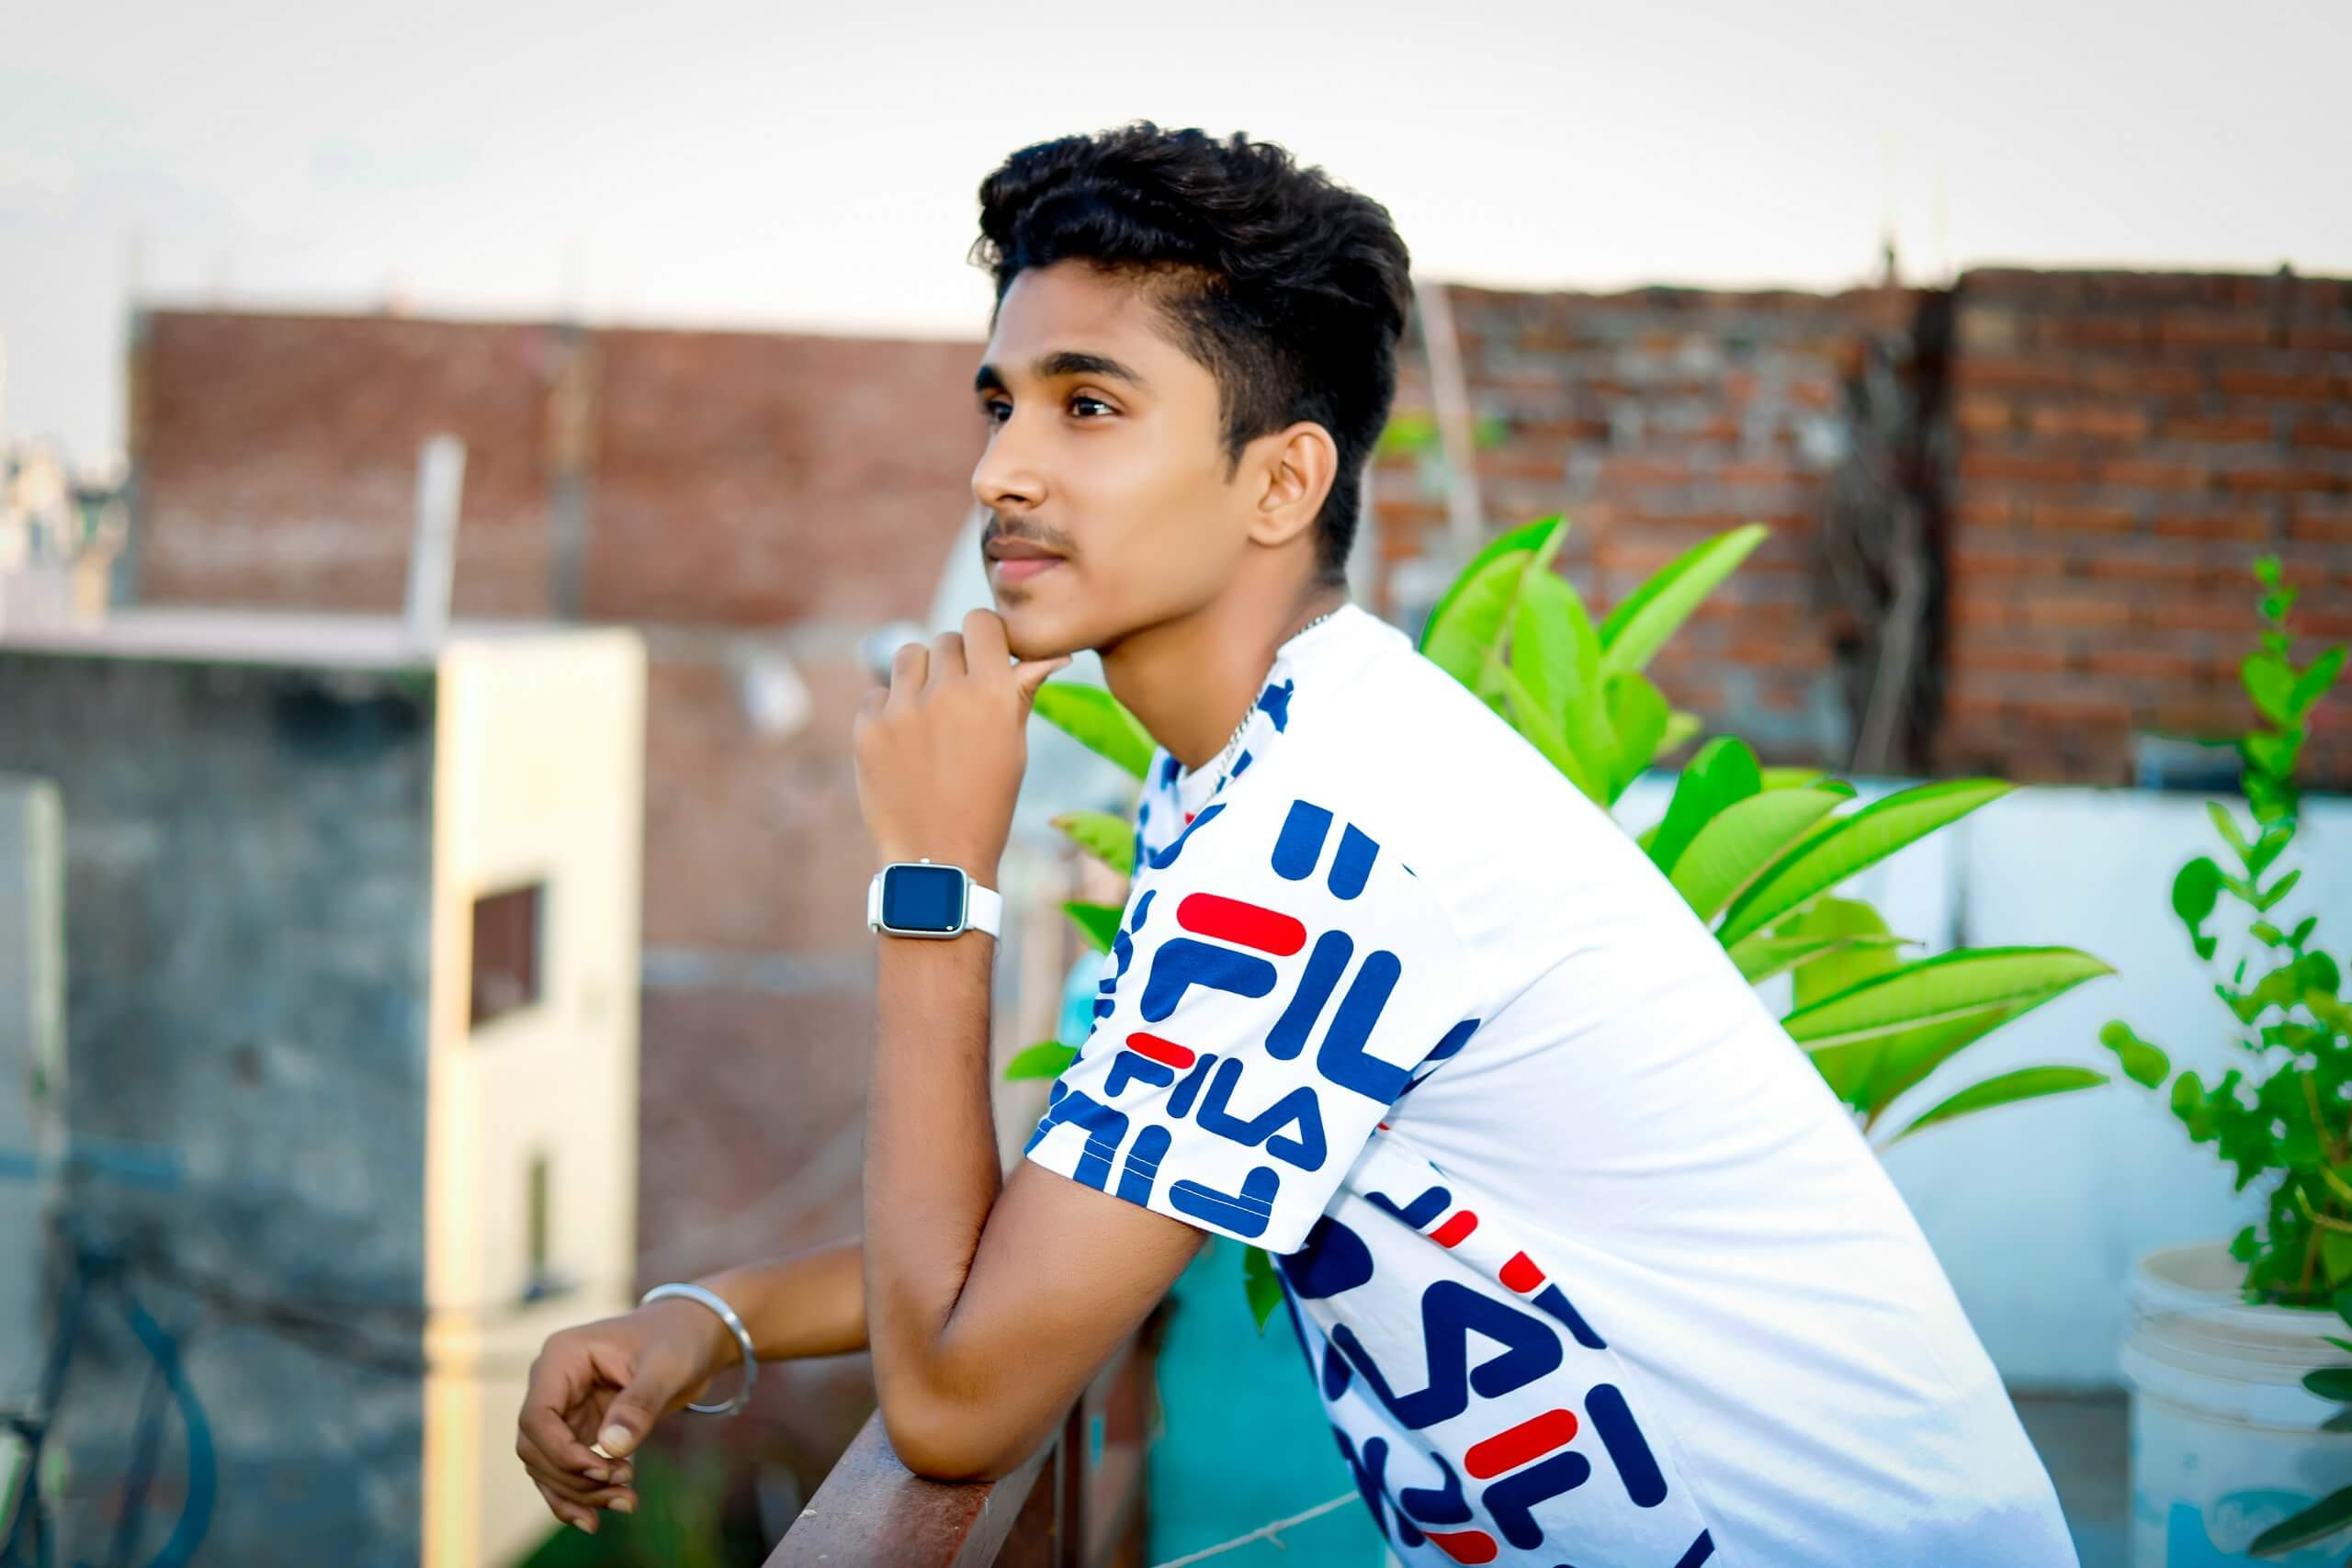 Pratham Chaudhary Biography, Career, Profession, Age, Family & More